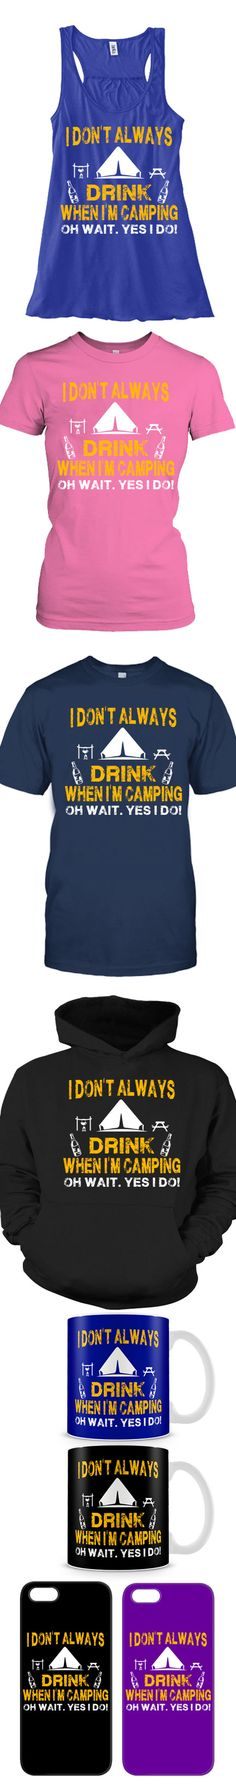 Camping Shirts! Click The Image To Buy It Now or Tag Someone You Want To Buy This For.